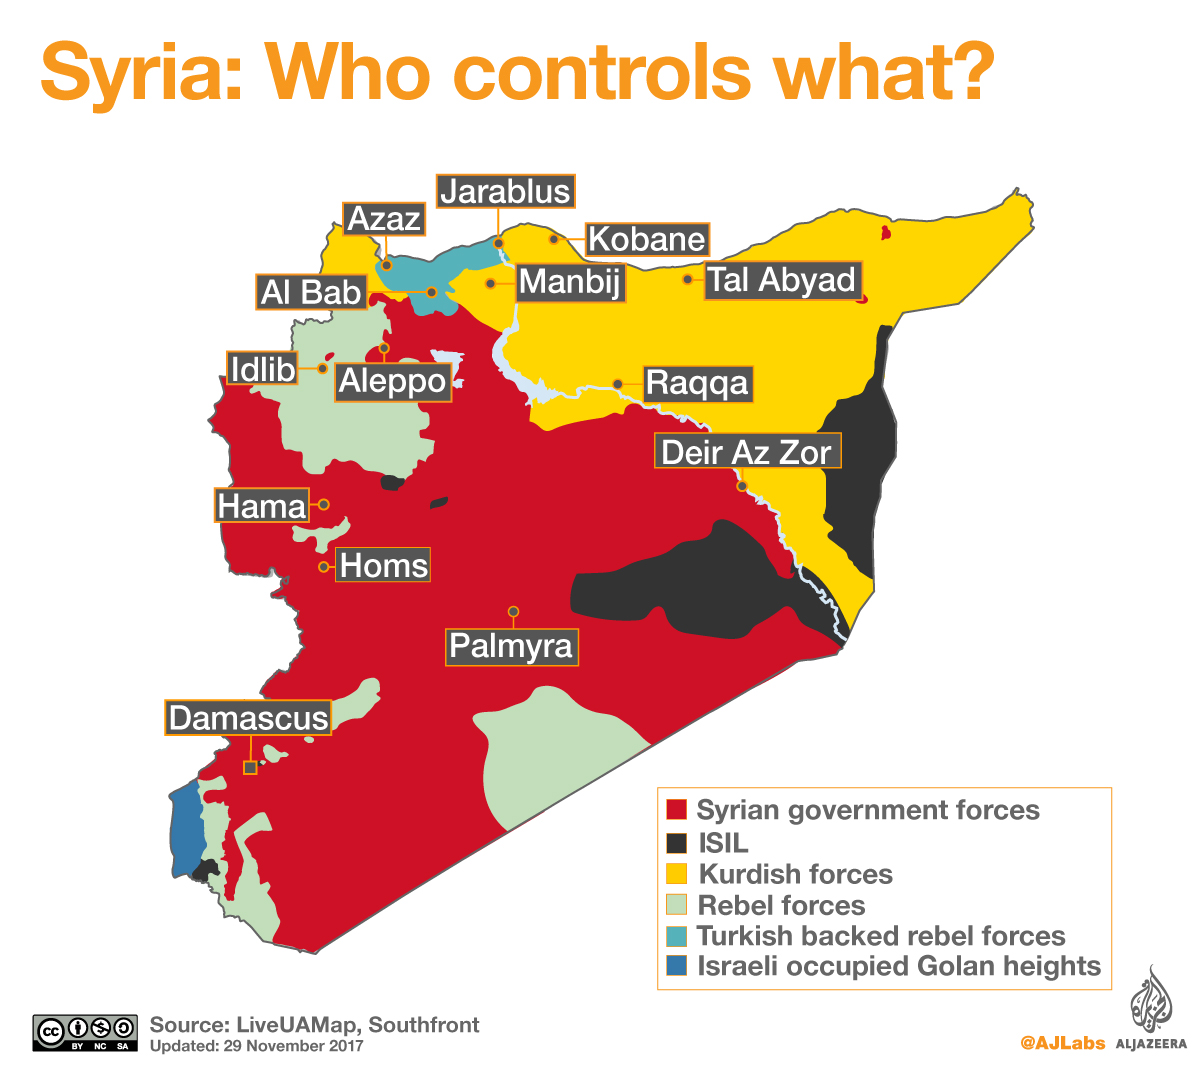 Who controls what in Syria